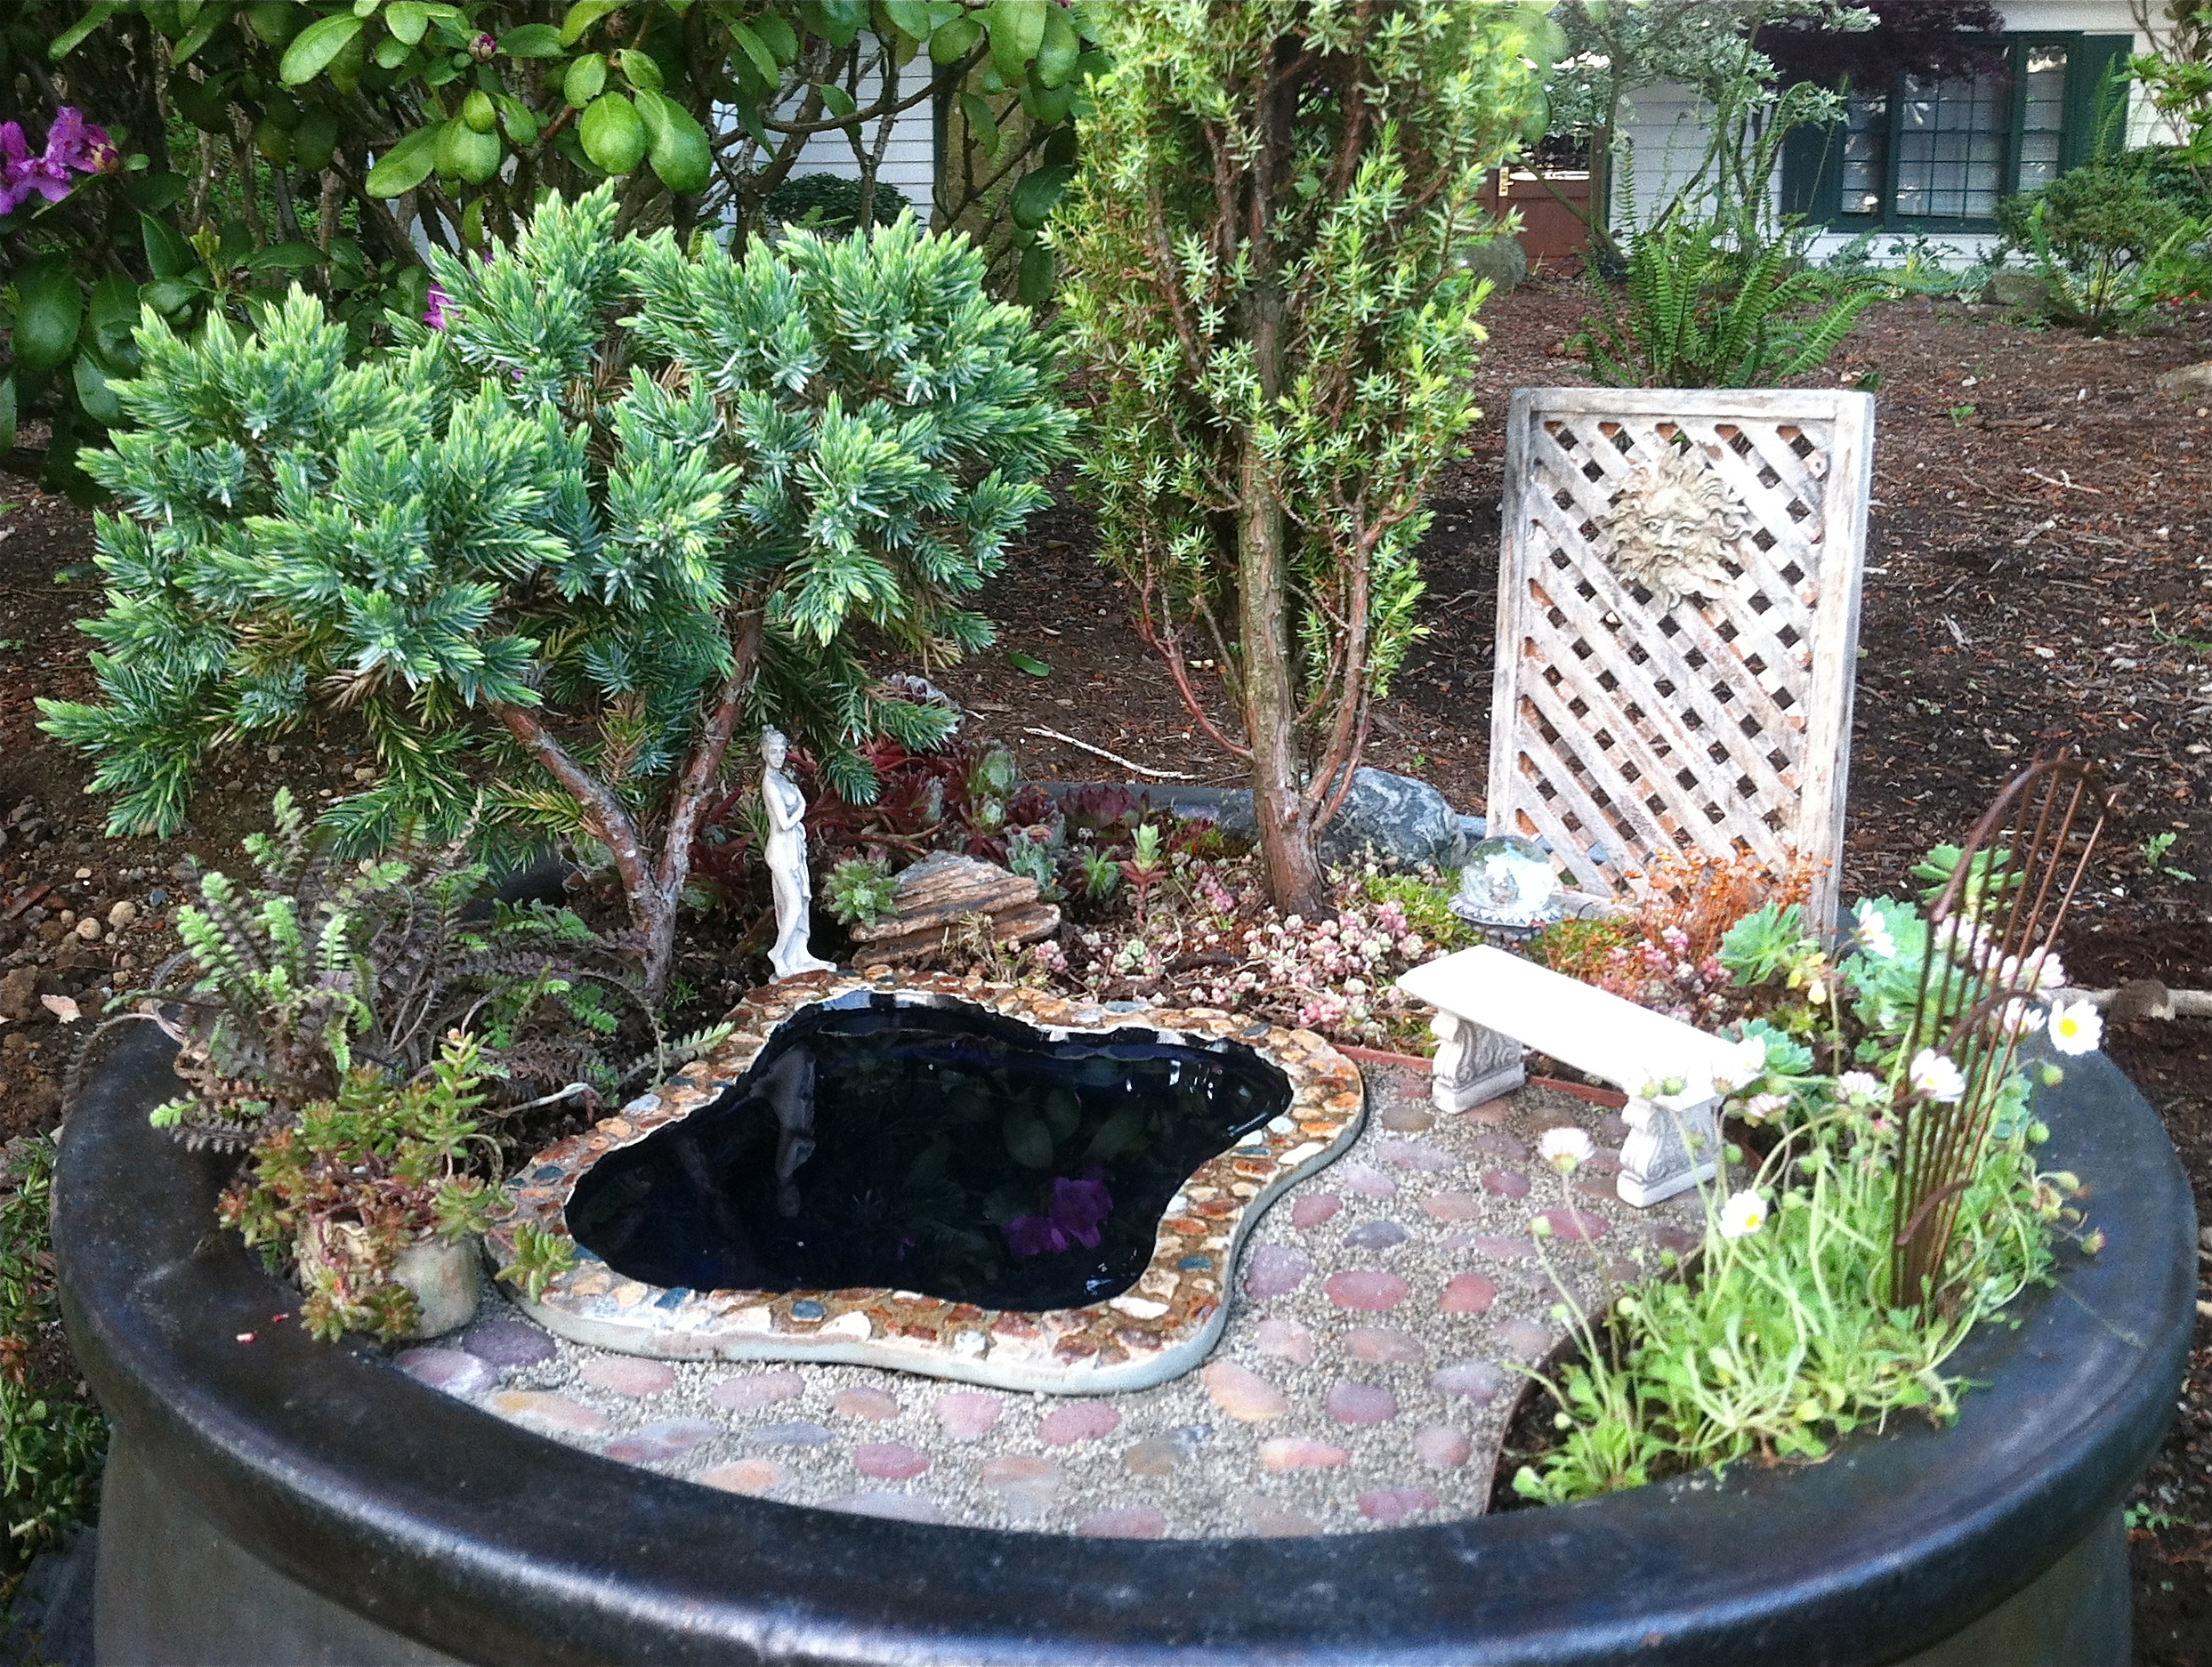 Miniature Garden with pond and trellis